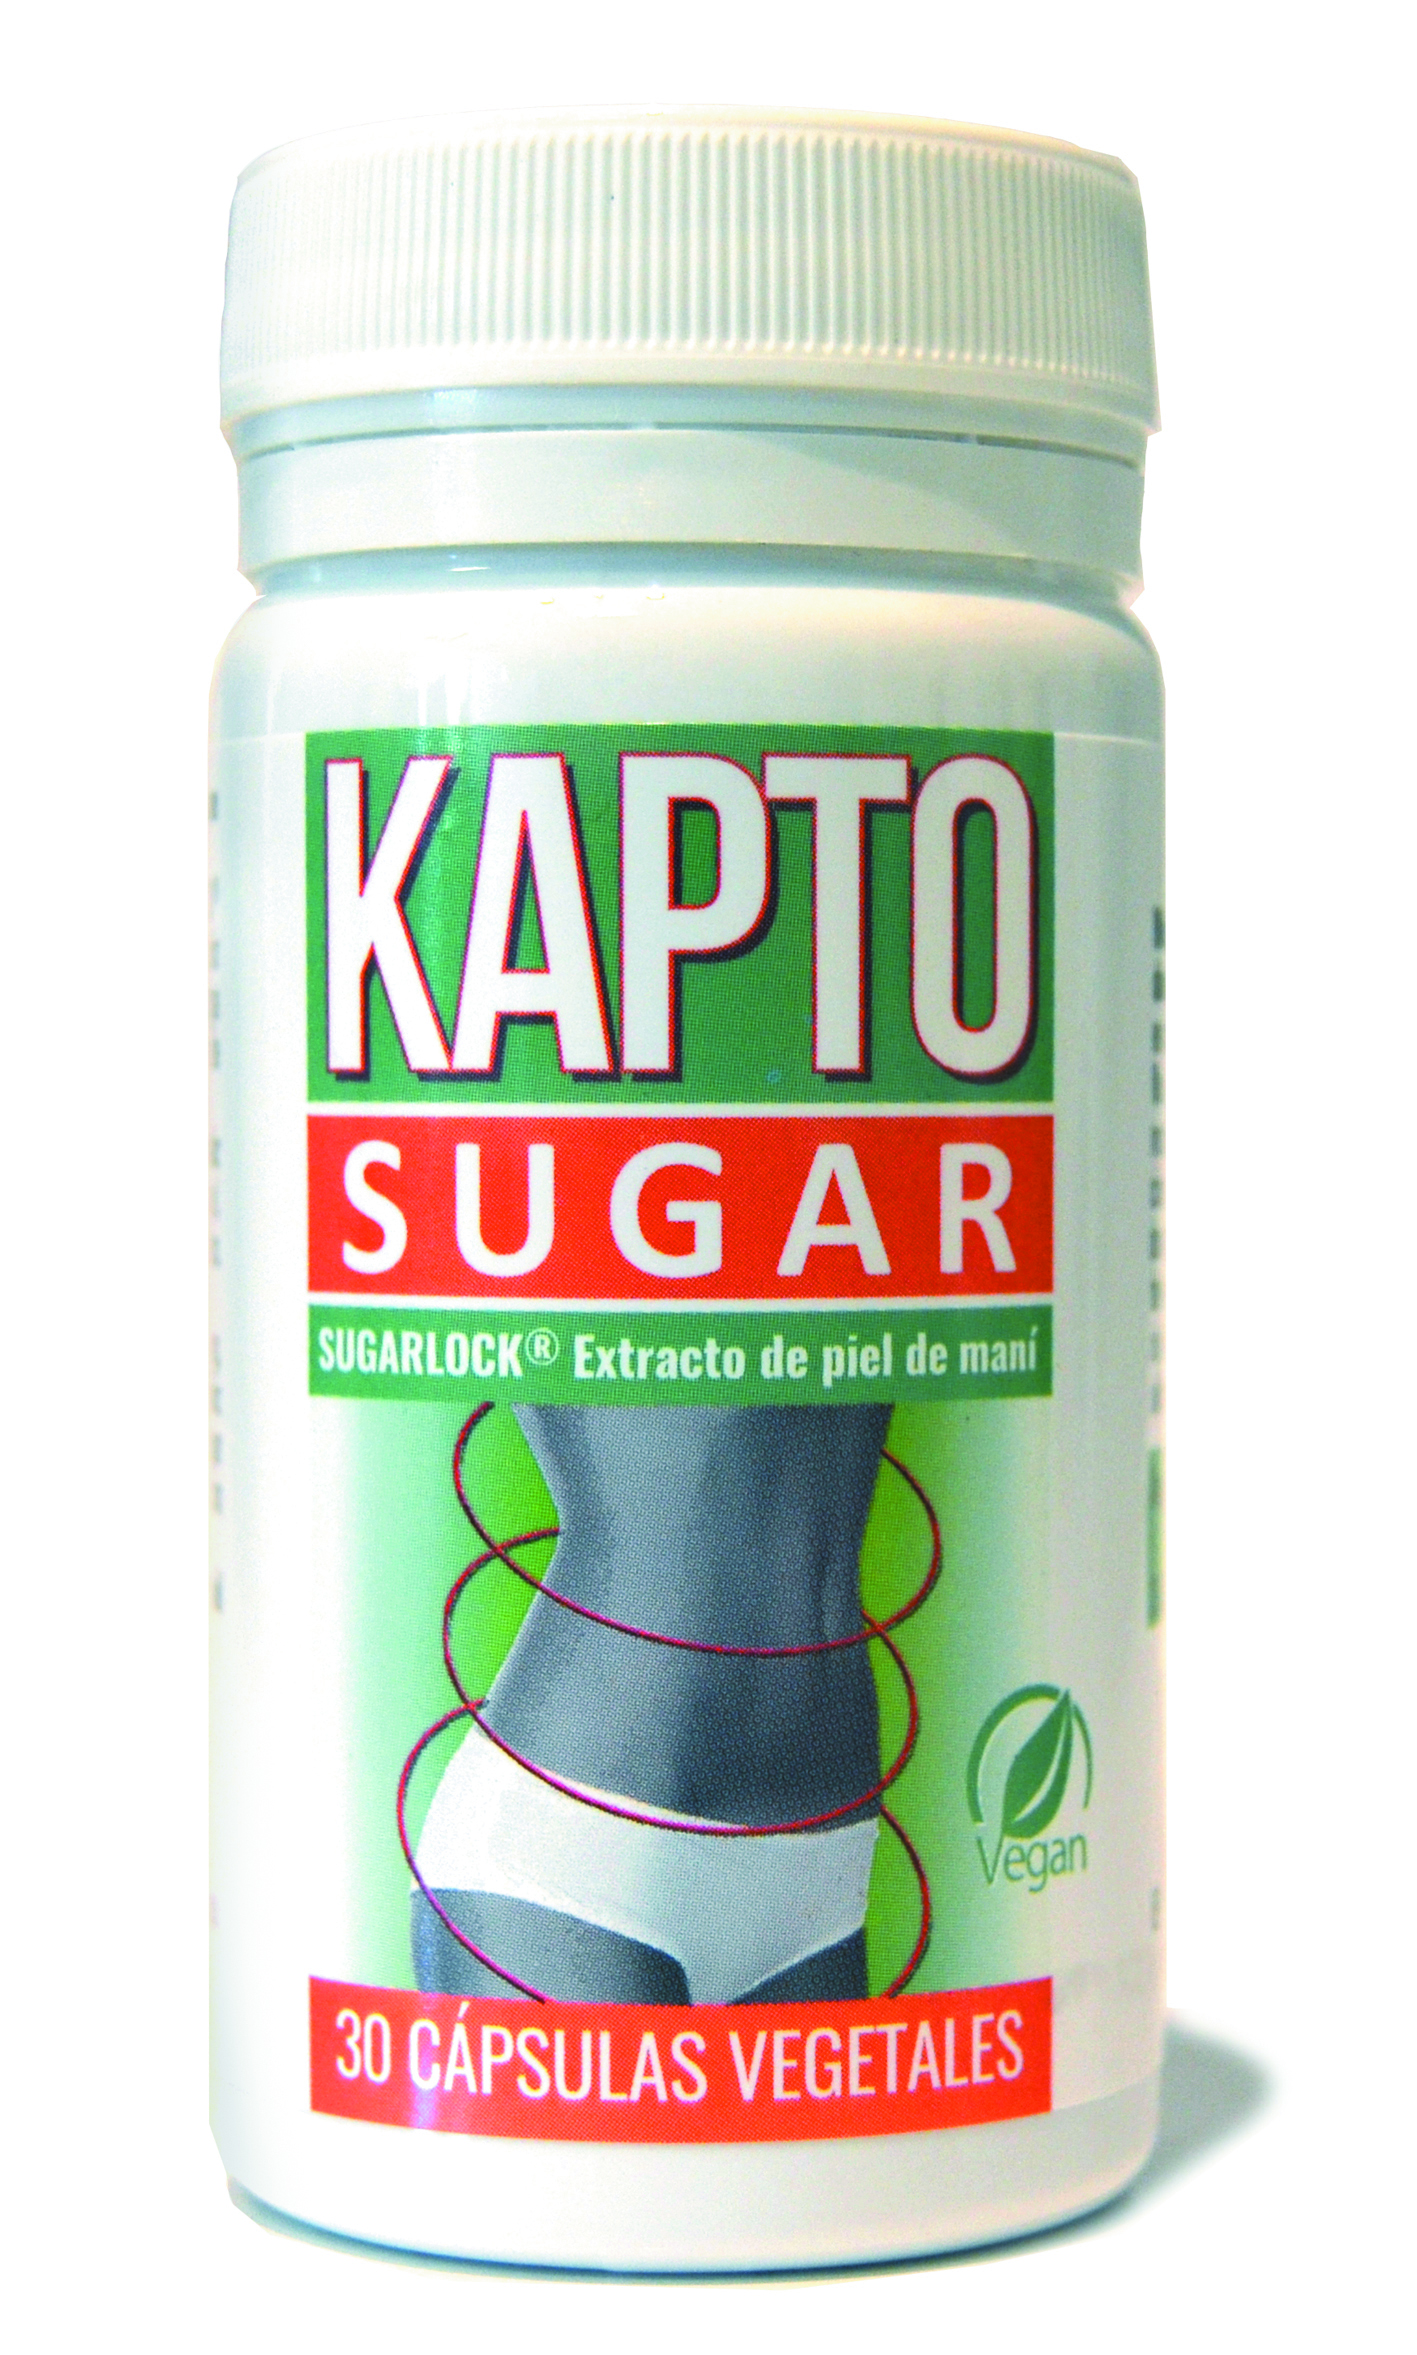 KAPTO SUGAR 30 Caps VEGETAL